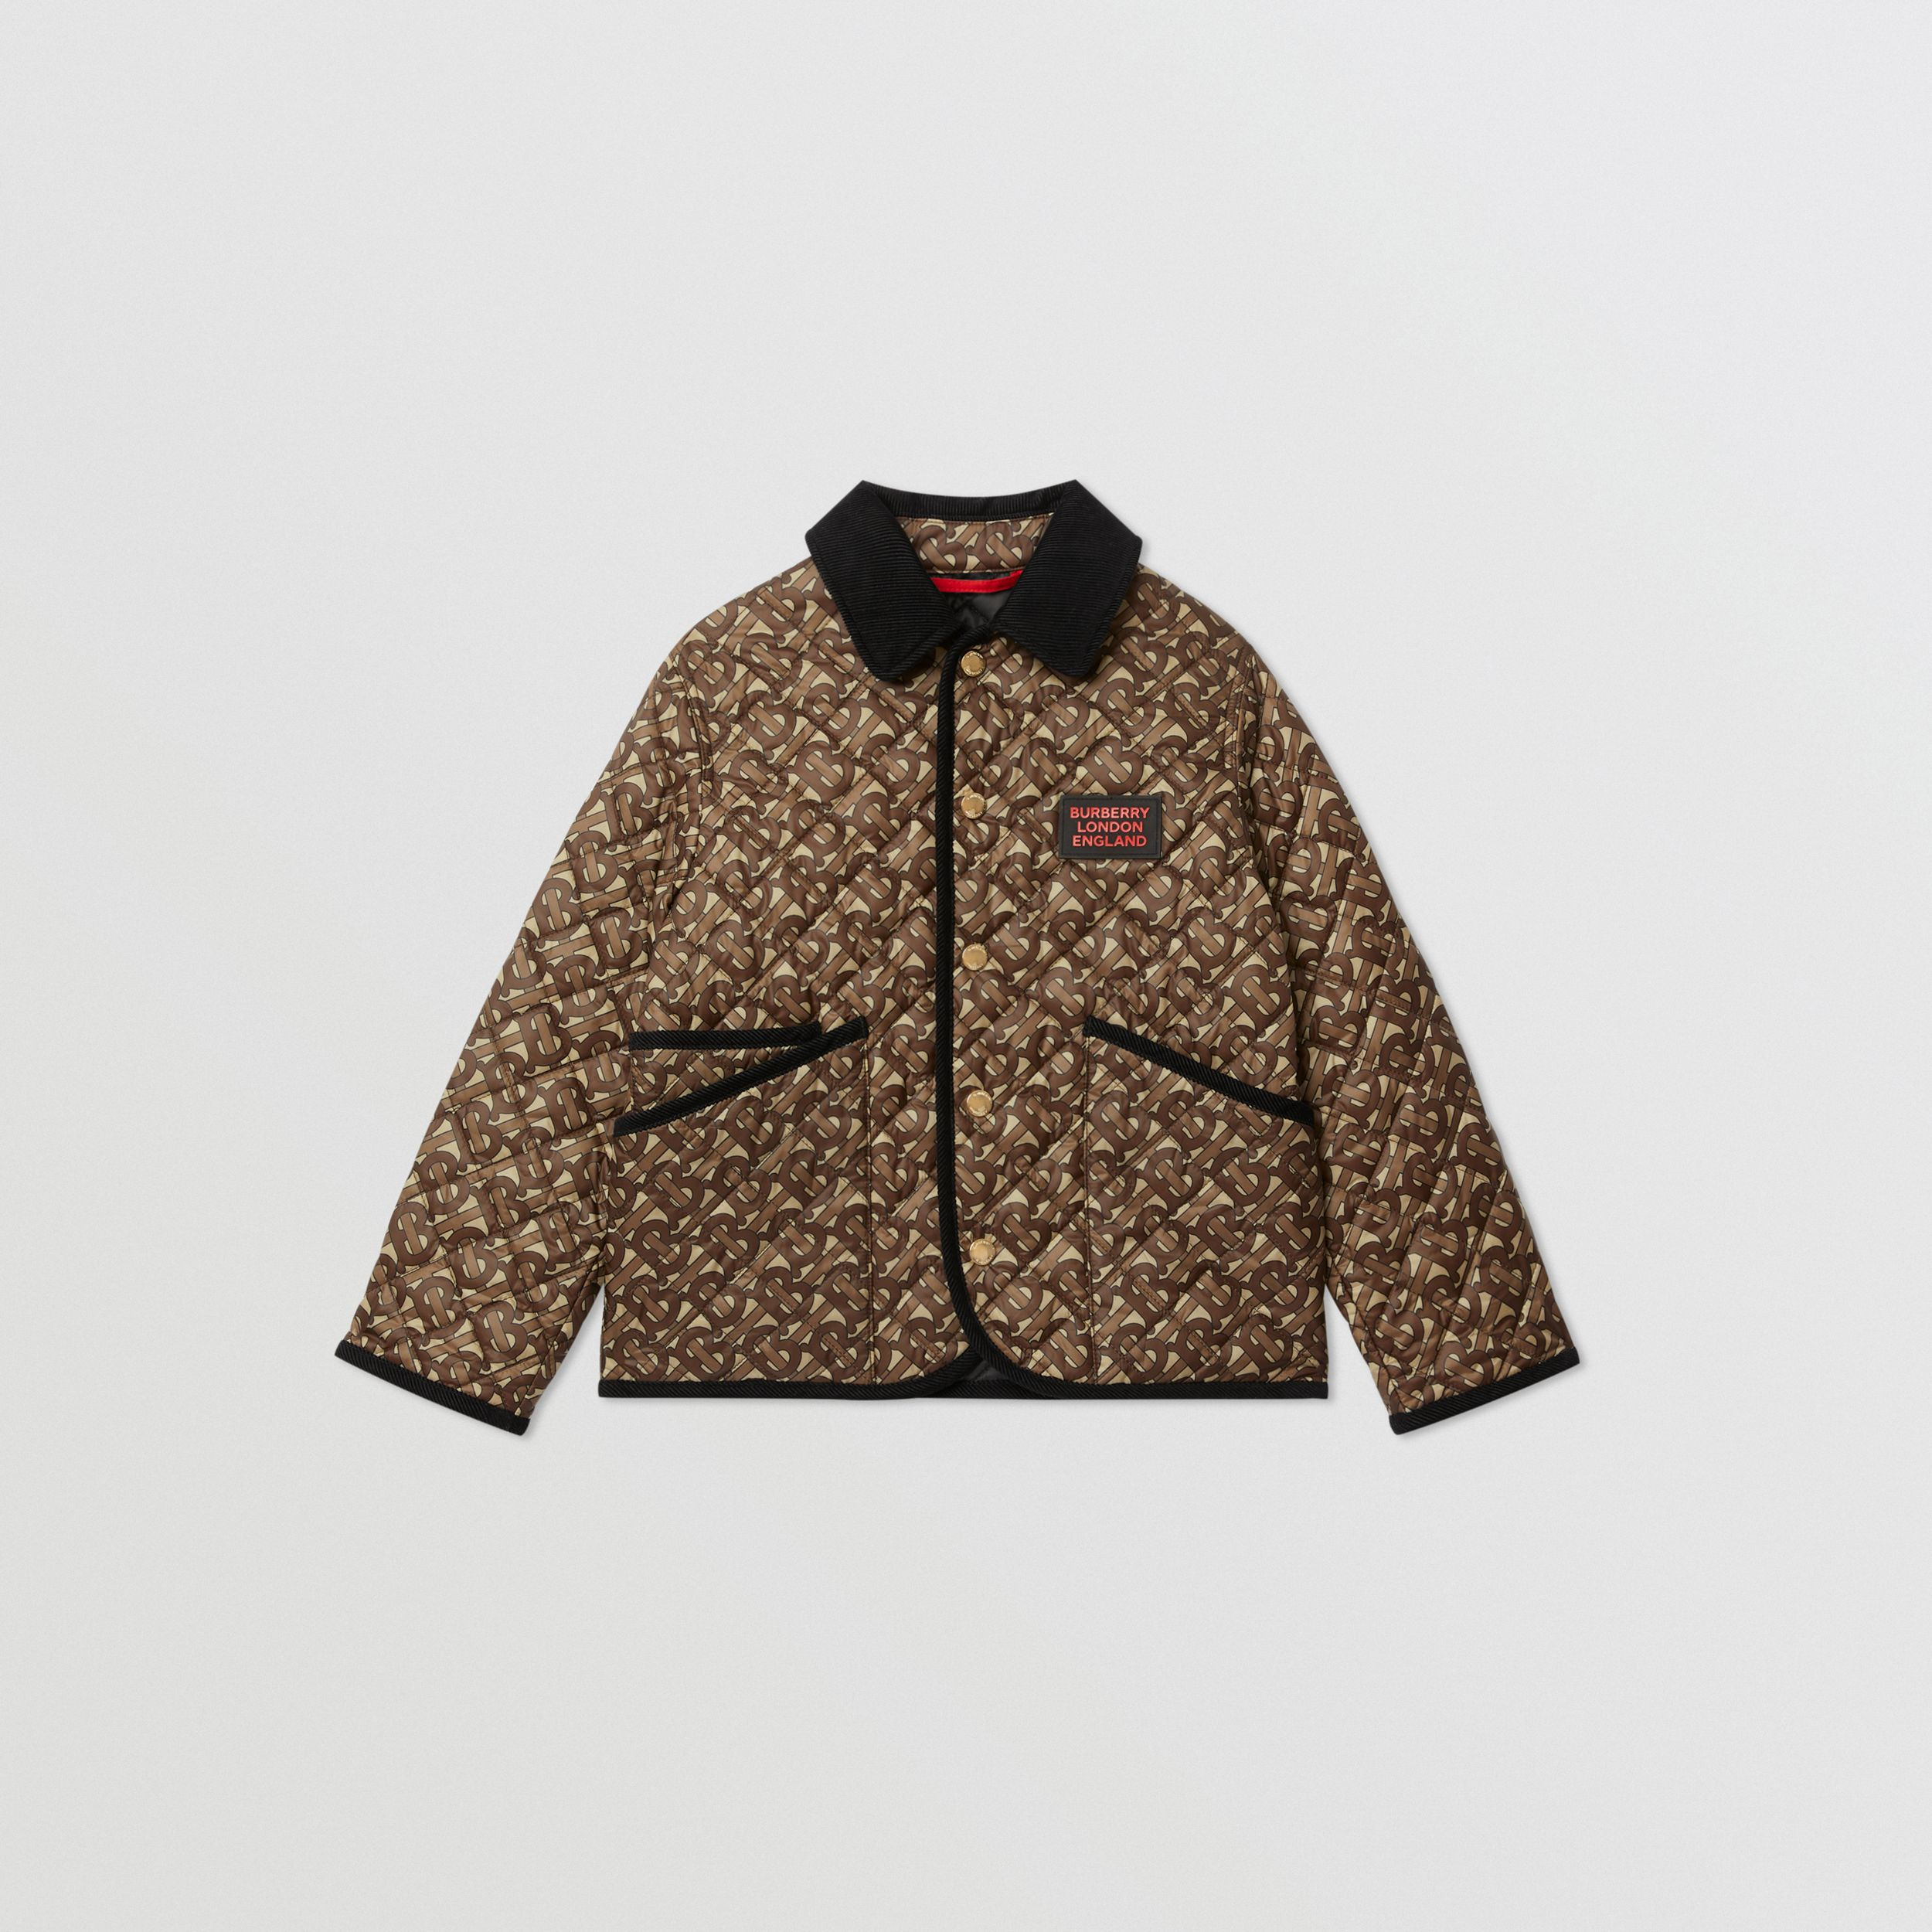 Monogram Print Diamond Quilted Jacket in Bridle Brown | Burberry United States - 1